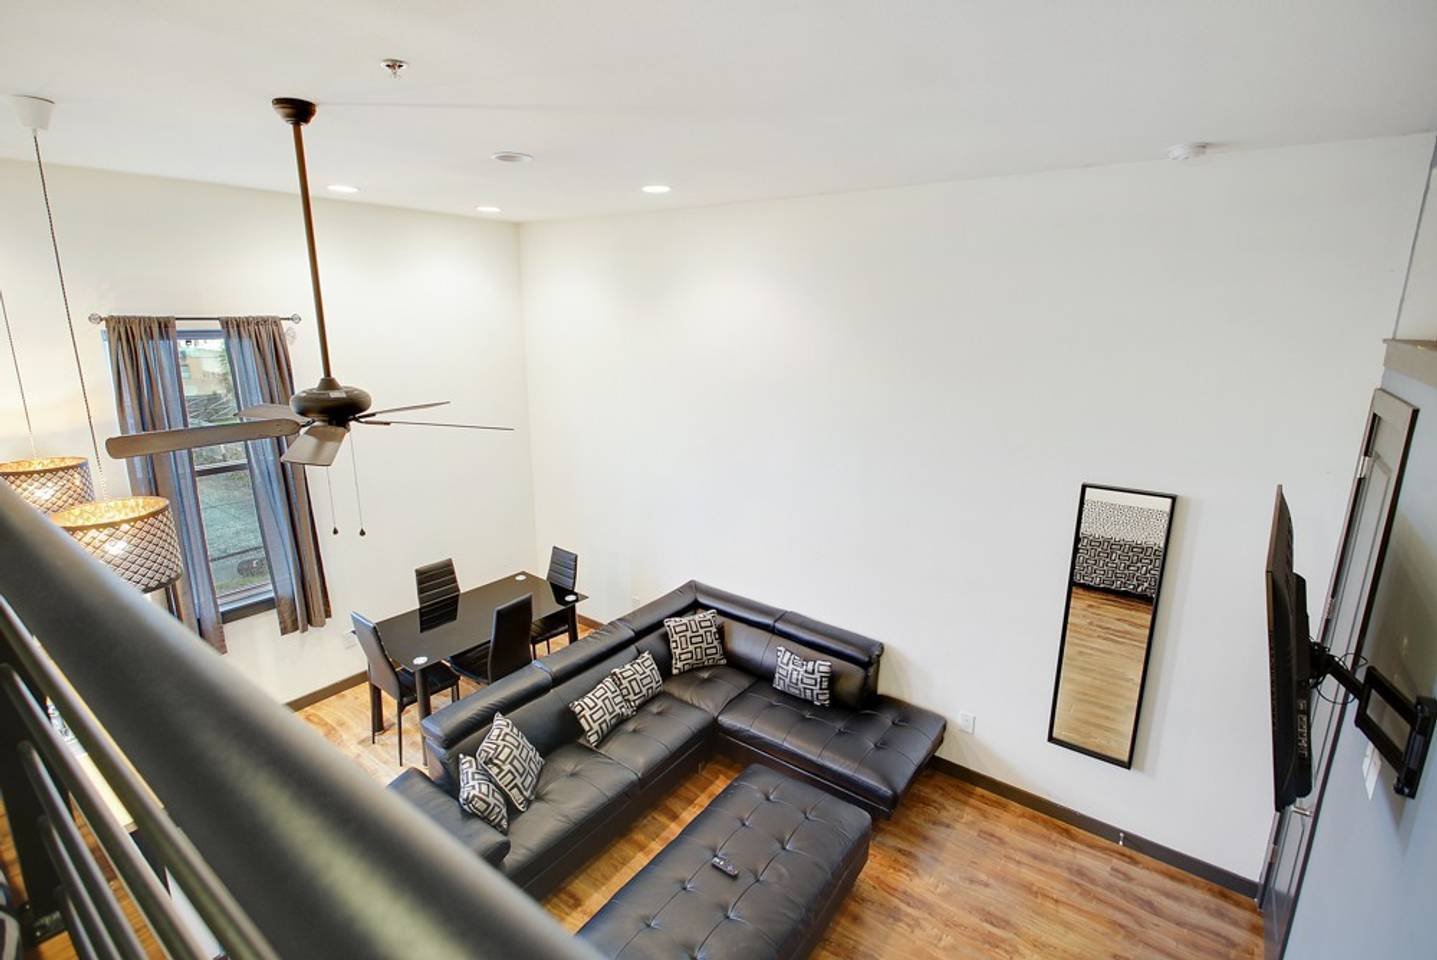 Loft Style Living in Downtown Tampa #205 photo 15530835